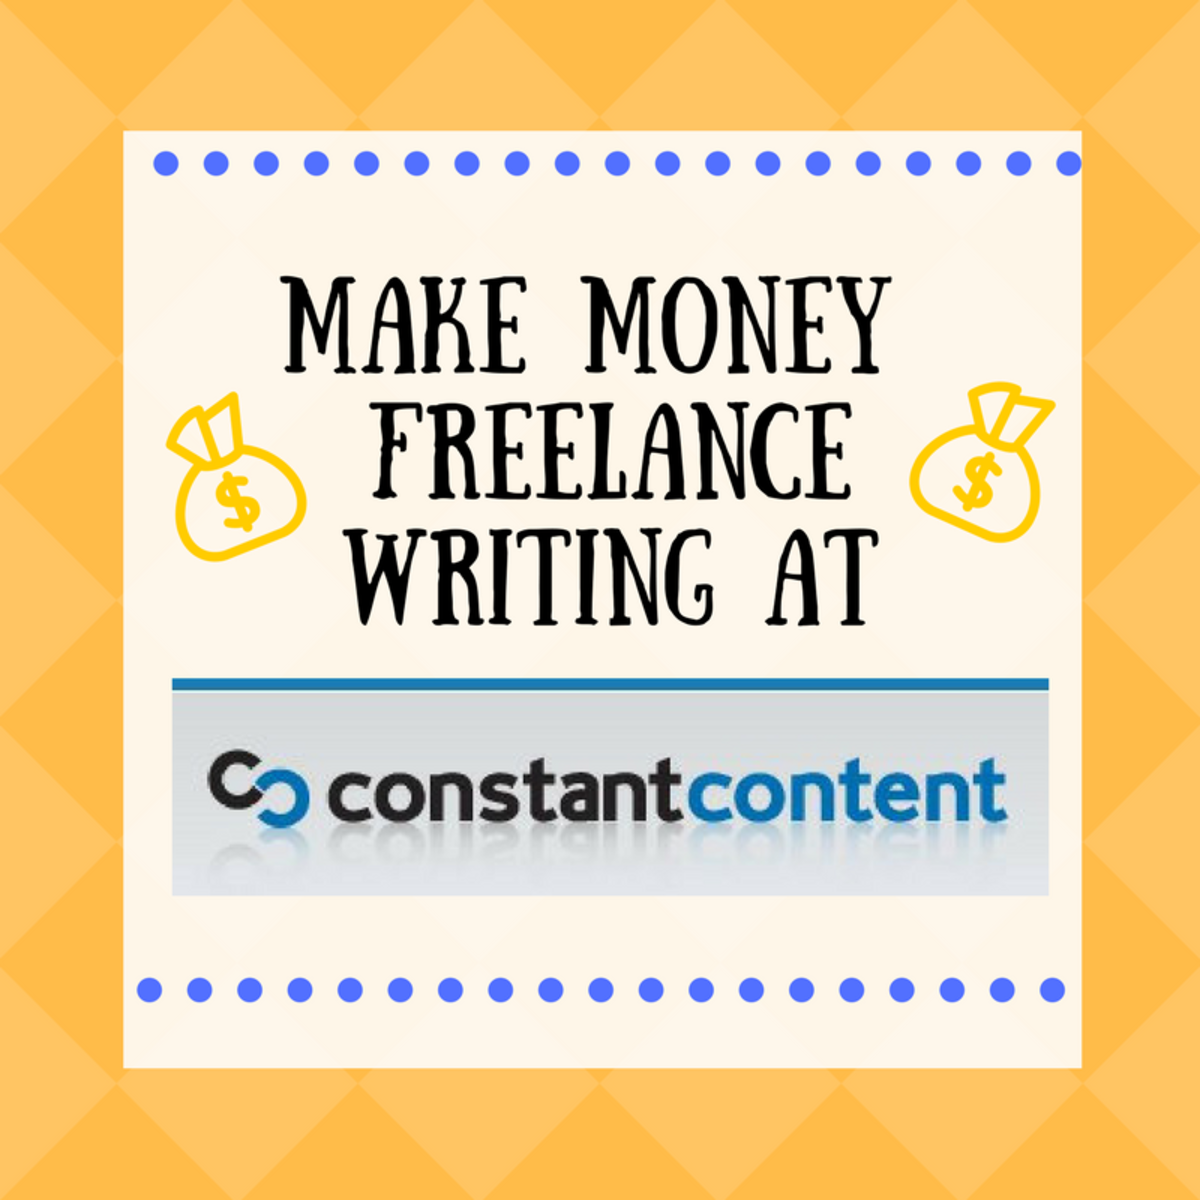 Earn Great Money Freelance Writing at Constant Content